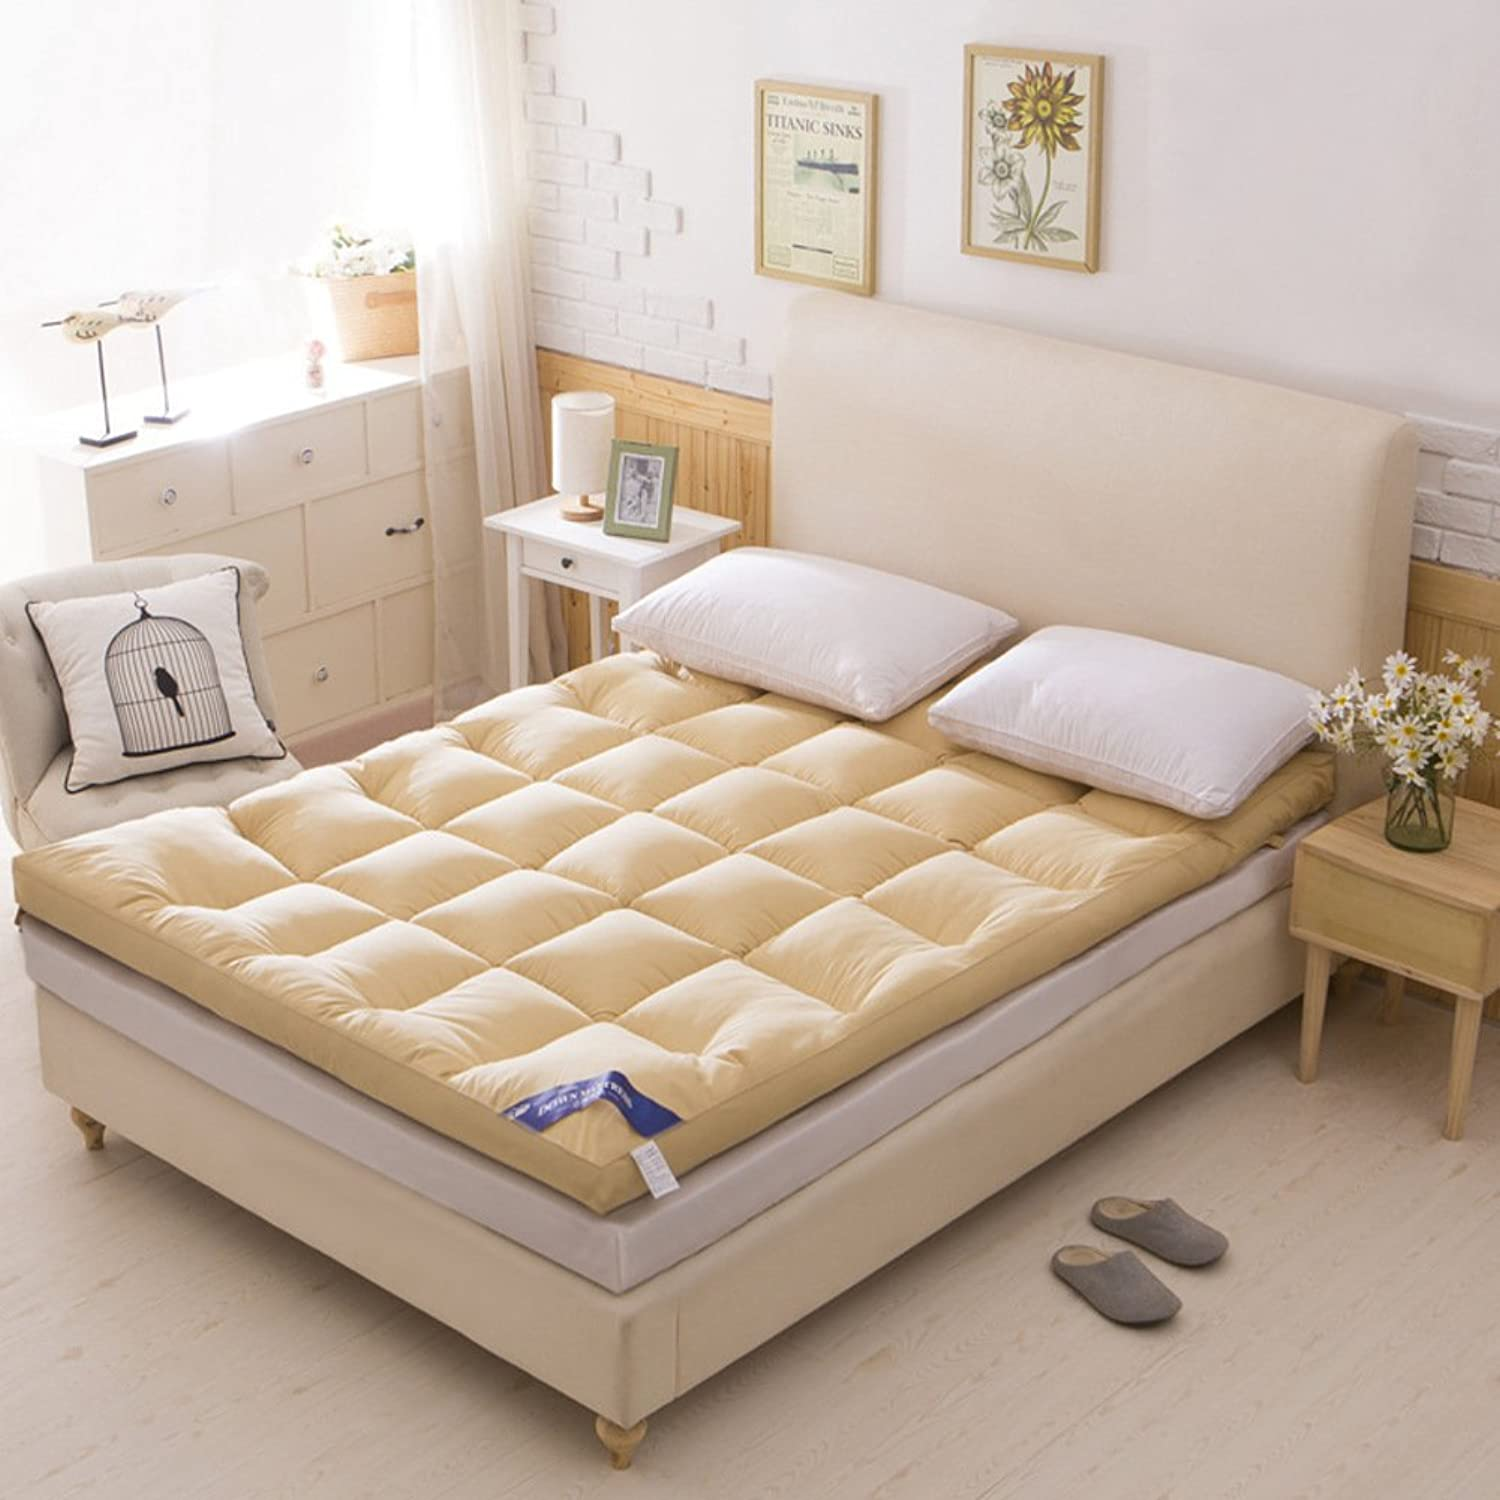 Thicken Plaid Mattress,Feather Velvet Bed pad Double Tatami mat-A 90x200cm(35x79inch)